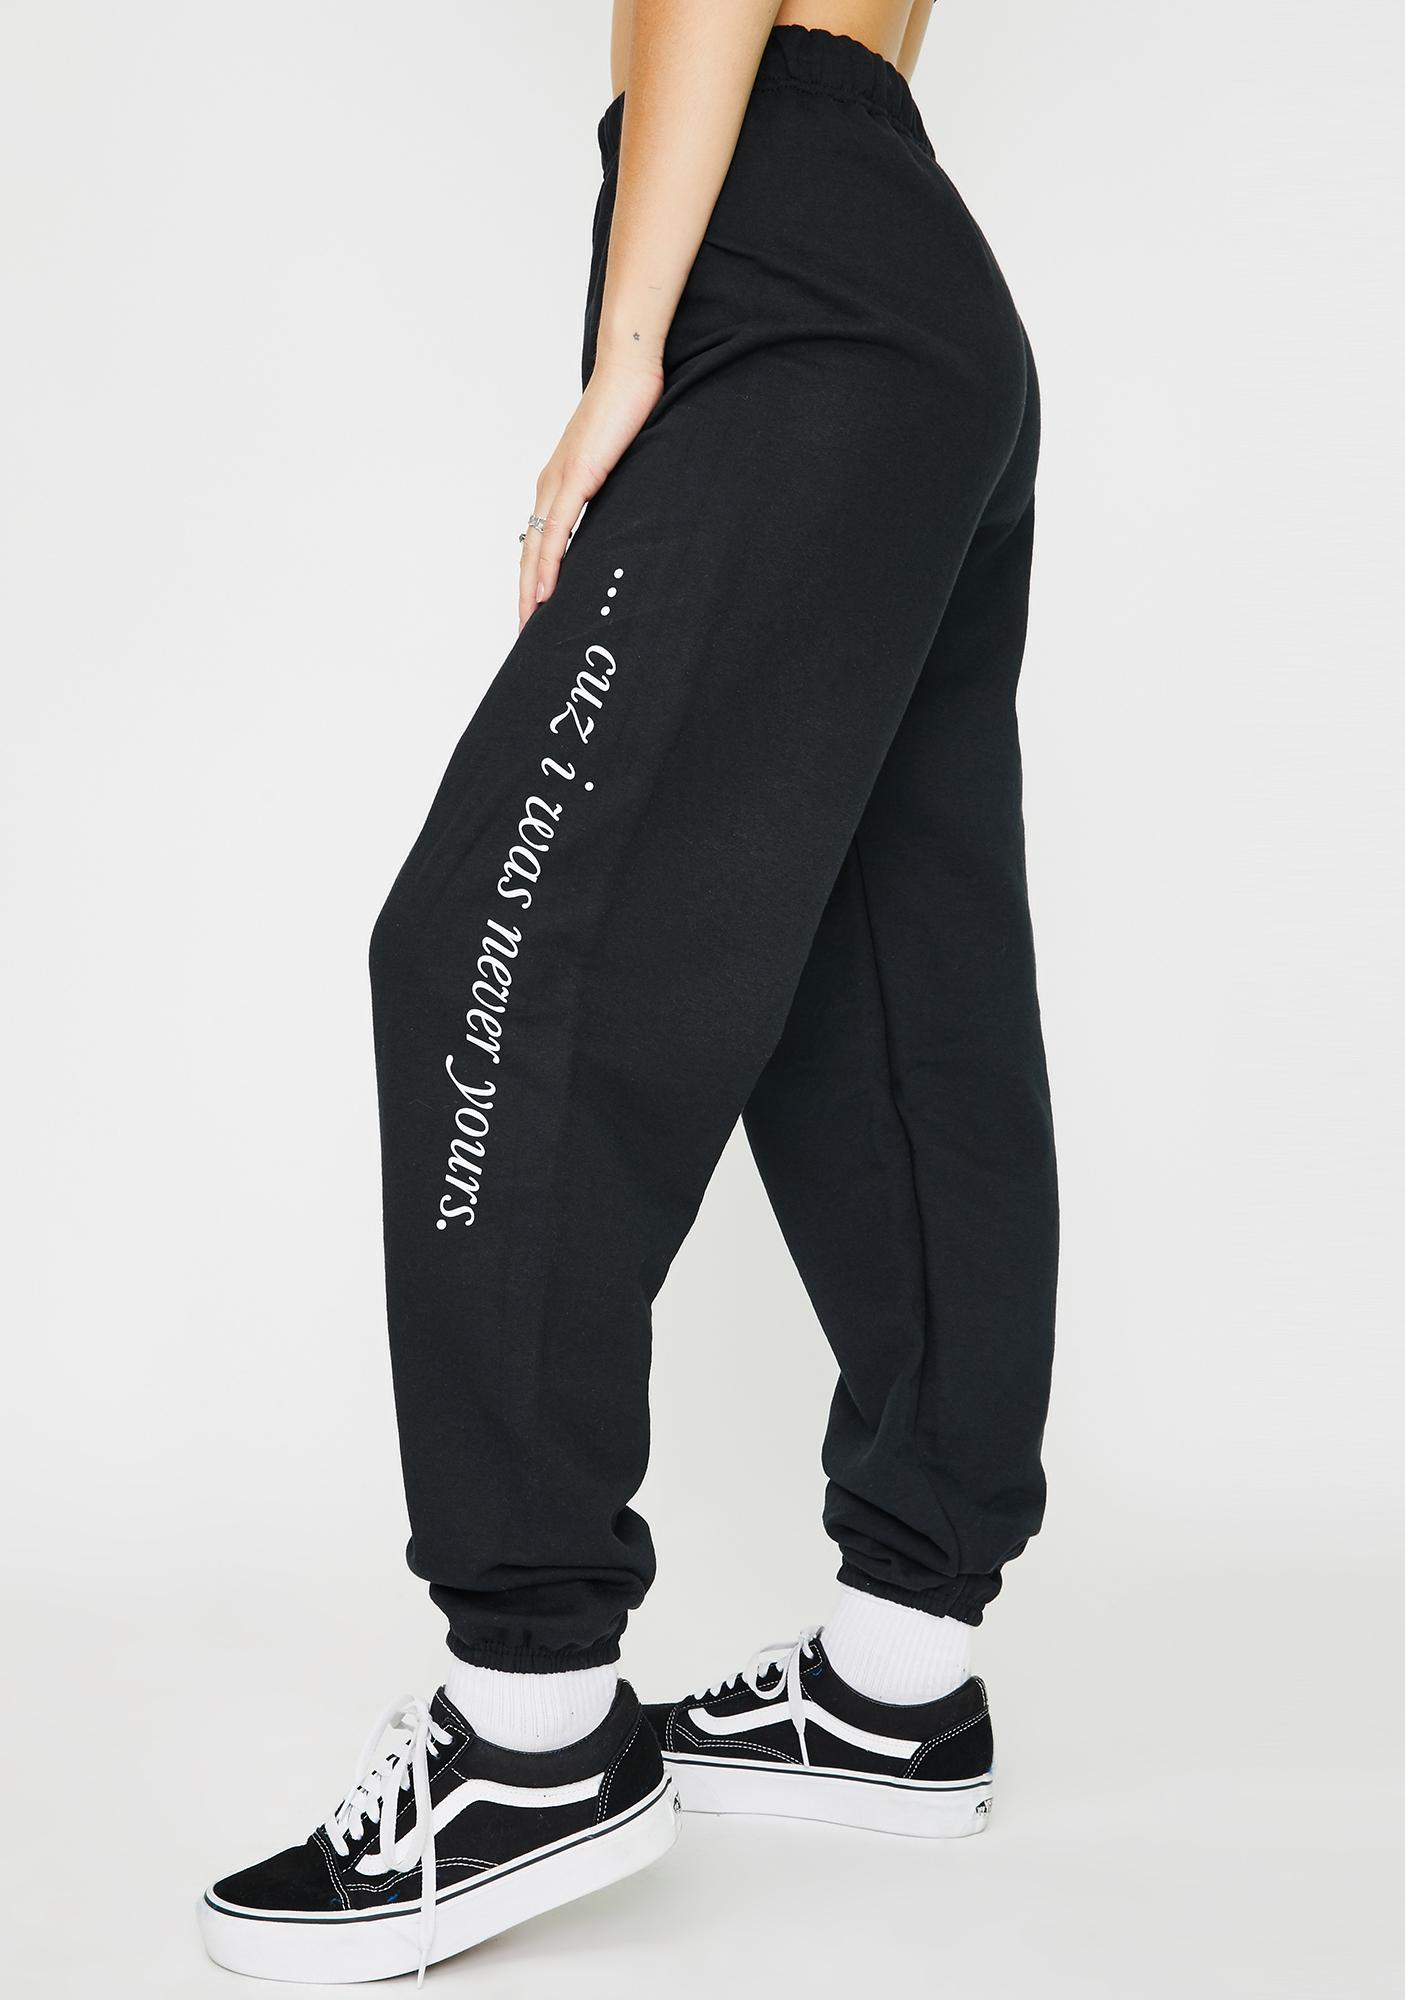 By Samii Ryan Sucks To Be You Jogger Sweatpants